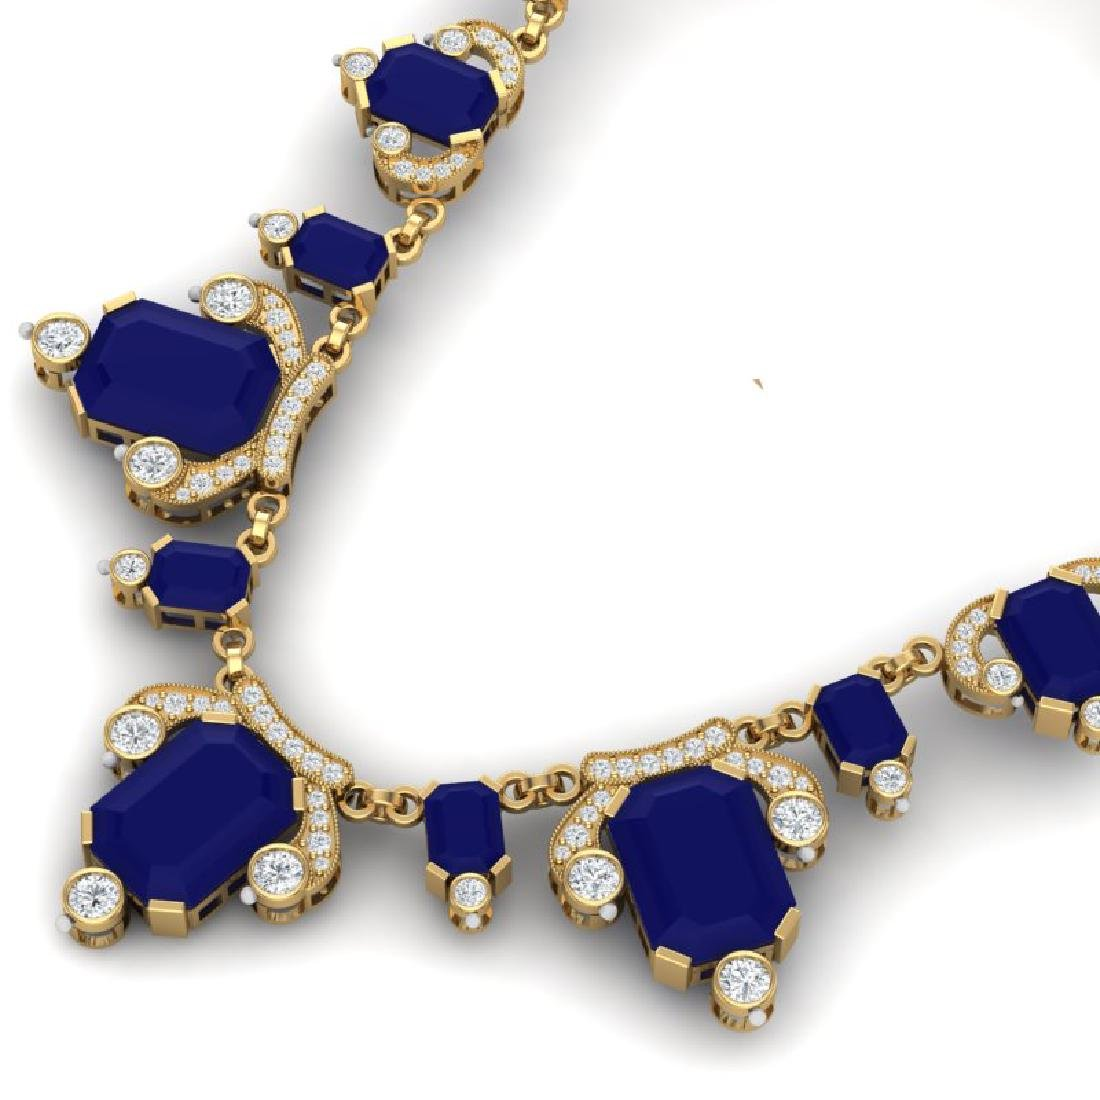 75.21 CTW Royalty Sapphire & VS Diamond Necklace 18K - 2